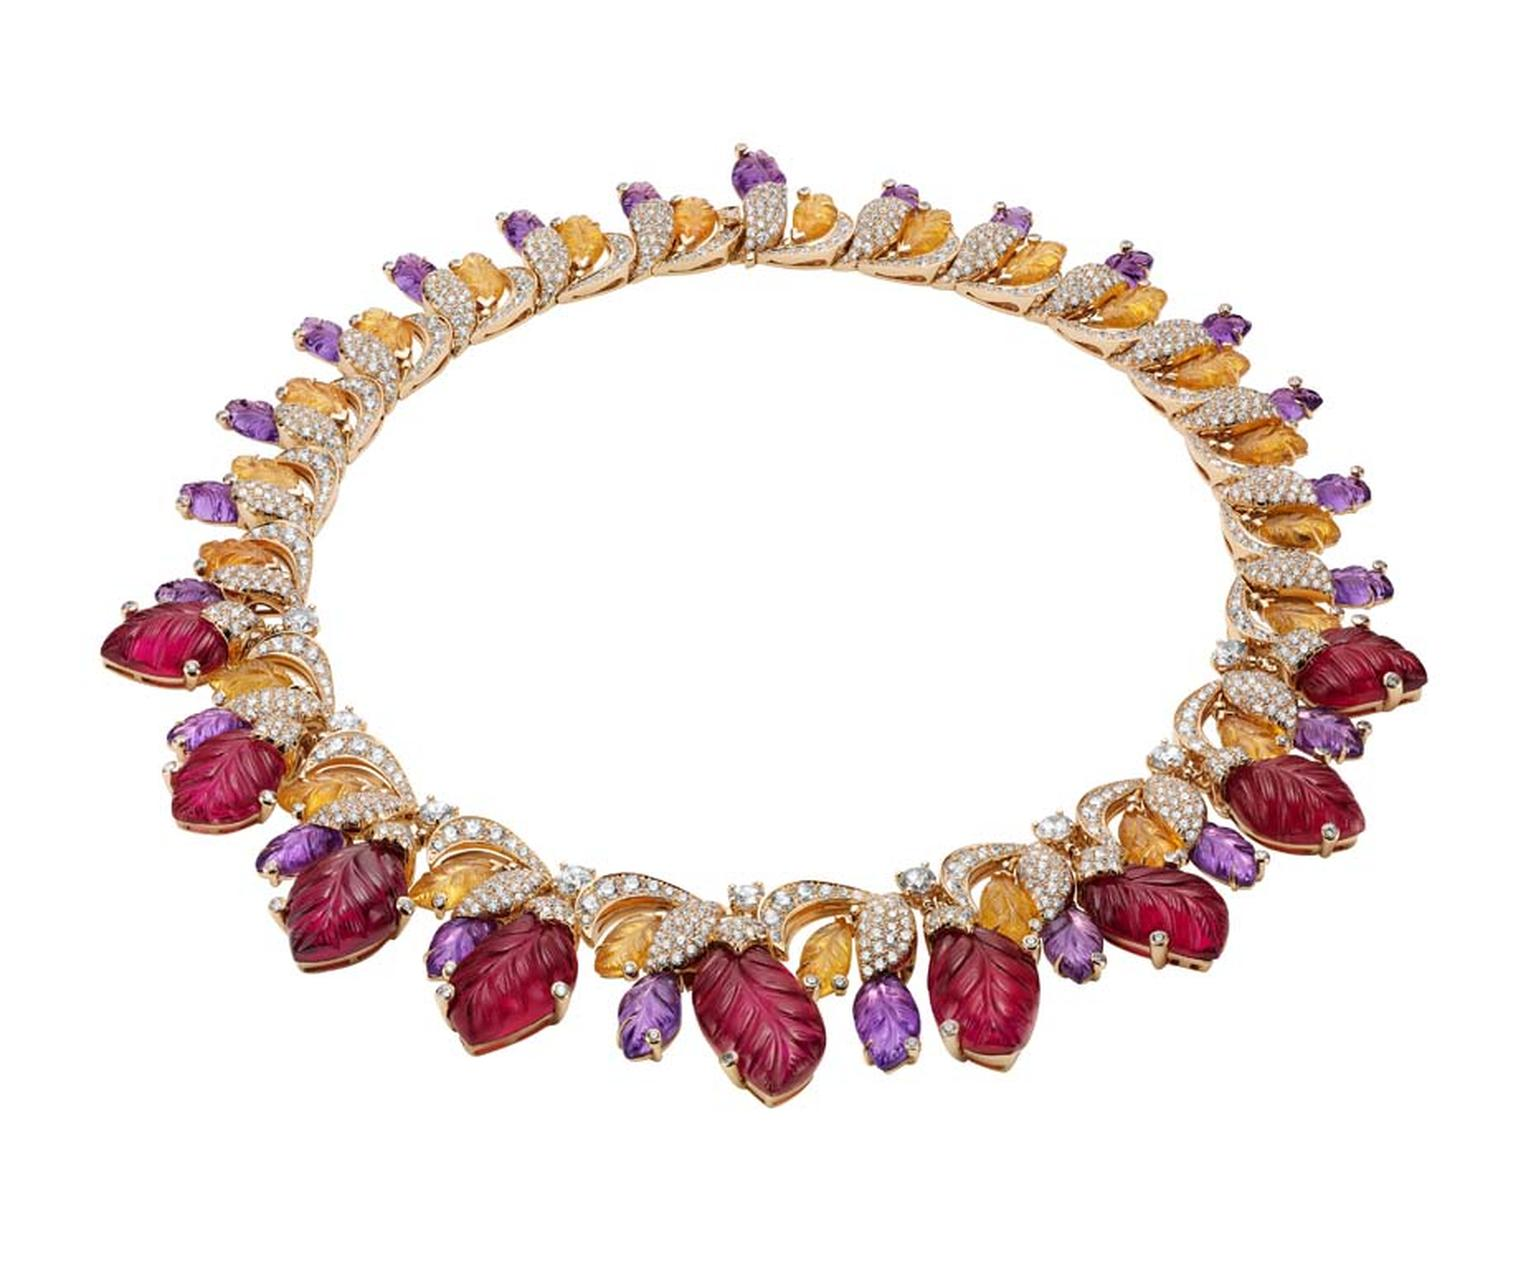 Bulgari 'Four Seasons Autumn' necklace in pink gold set with tourmalines, amethysts, spessartite and brilliant-cut and pavé-set diamonds